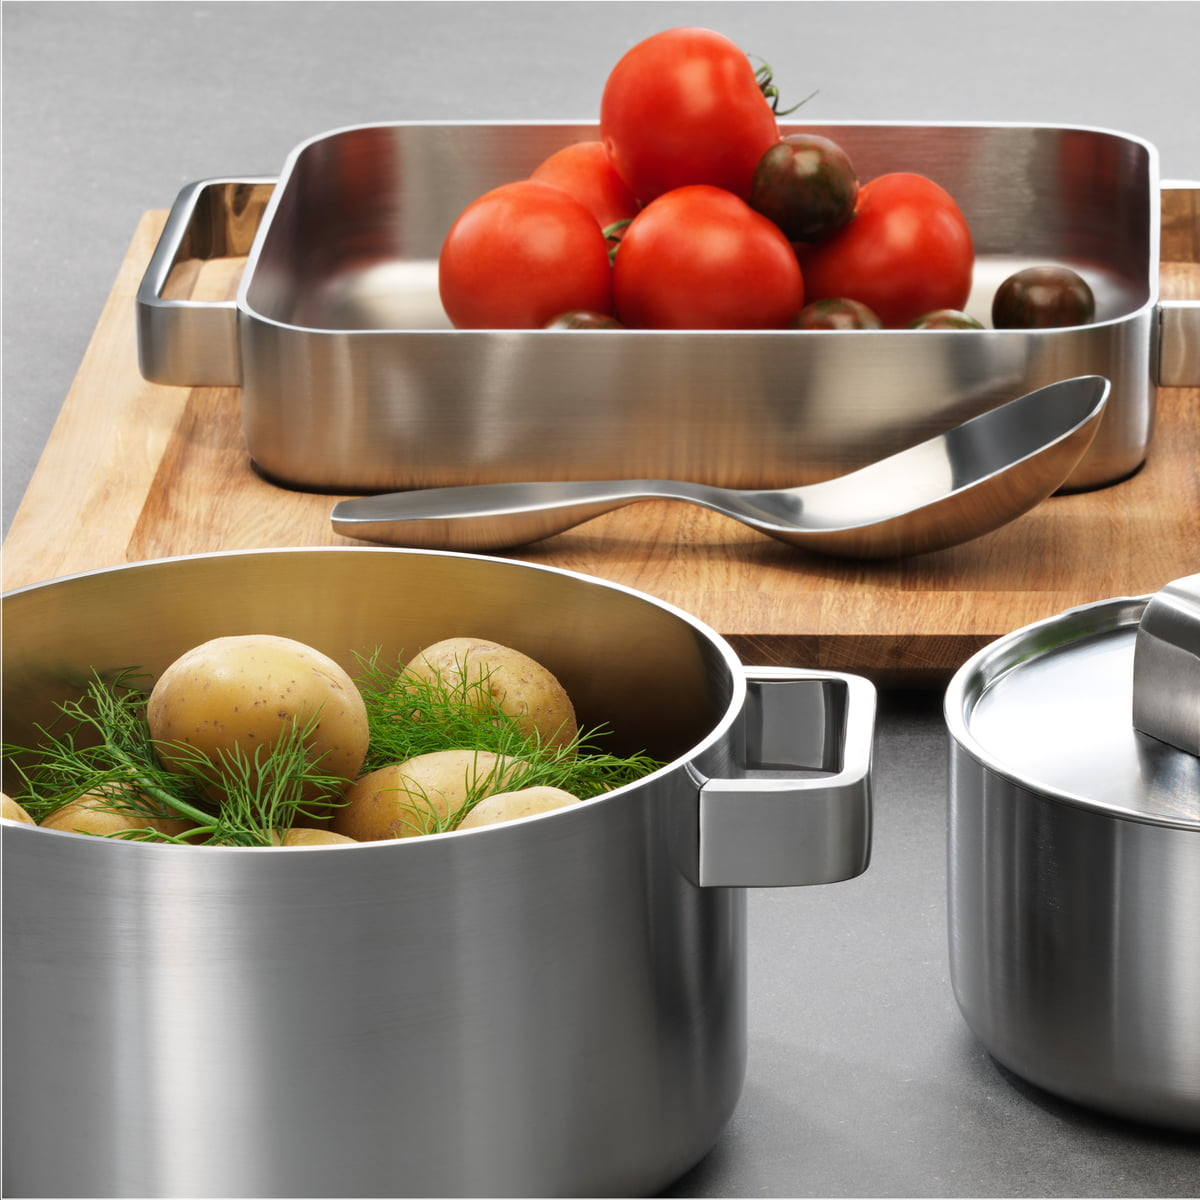 Tools Pots & Pans Set by Iittala | Connox Shop - Iittala, Tools Set ambience image with tomatoes